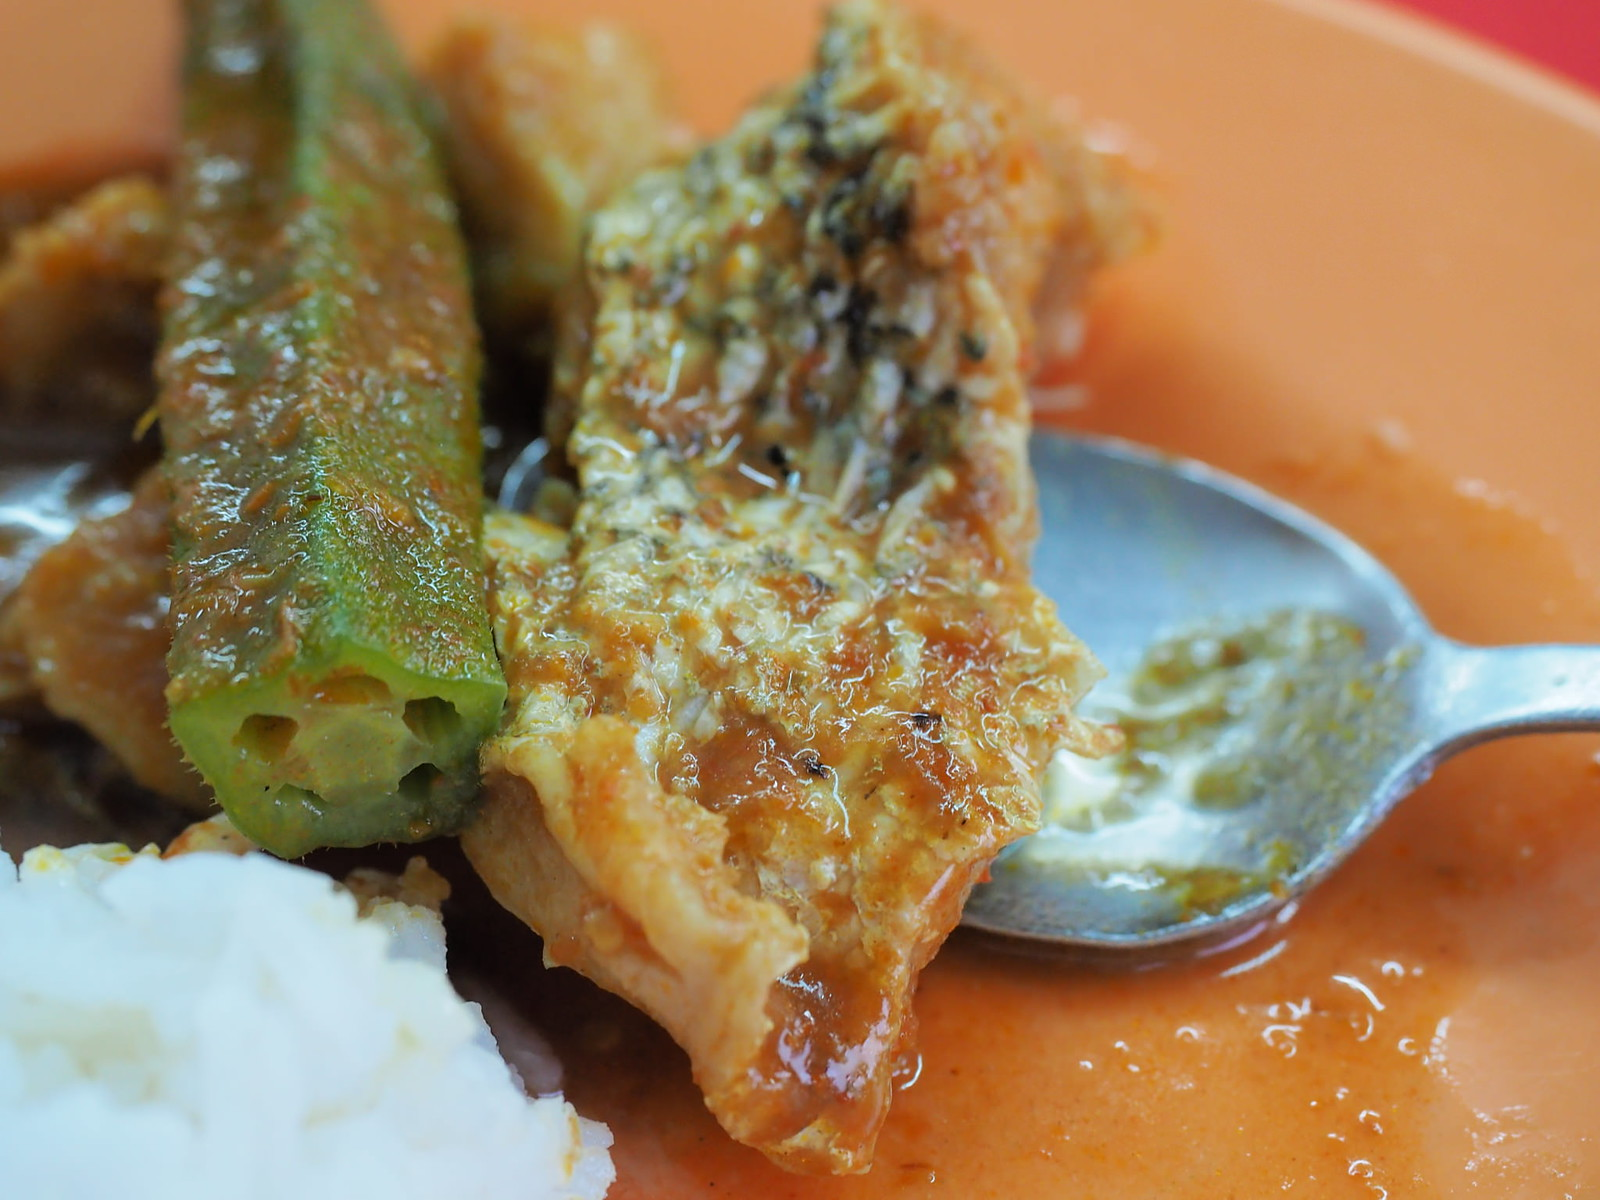 Okra / Lady's Finger and slice of fish from the Curry Fish Head